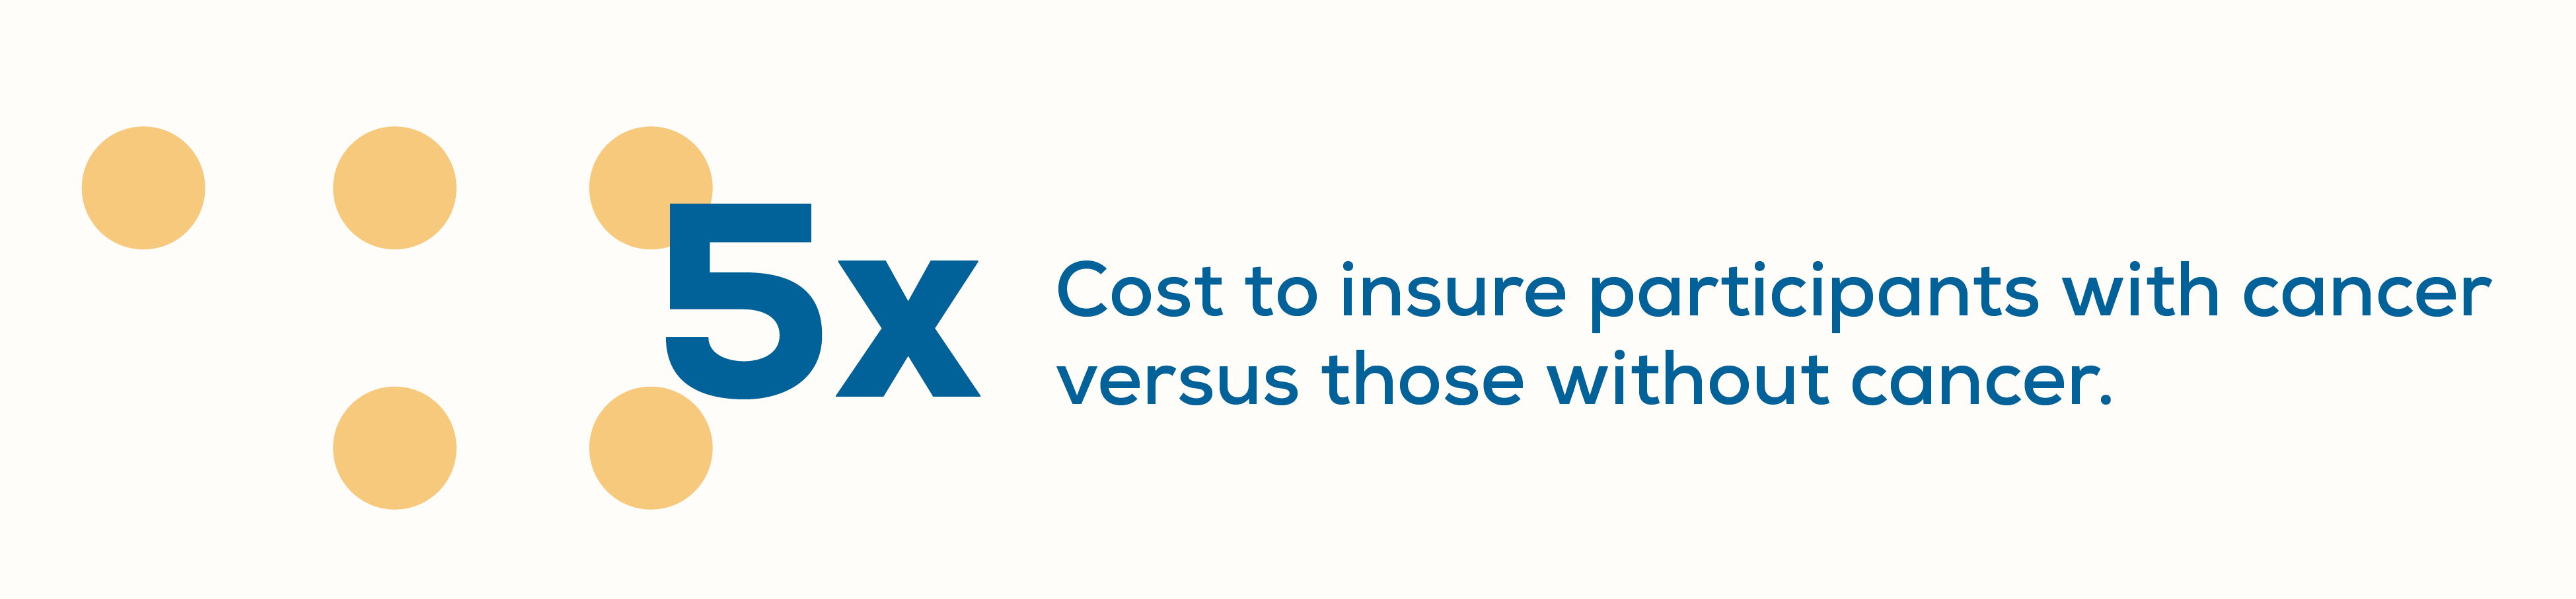 cost to insure participants with cancer versus those without